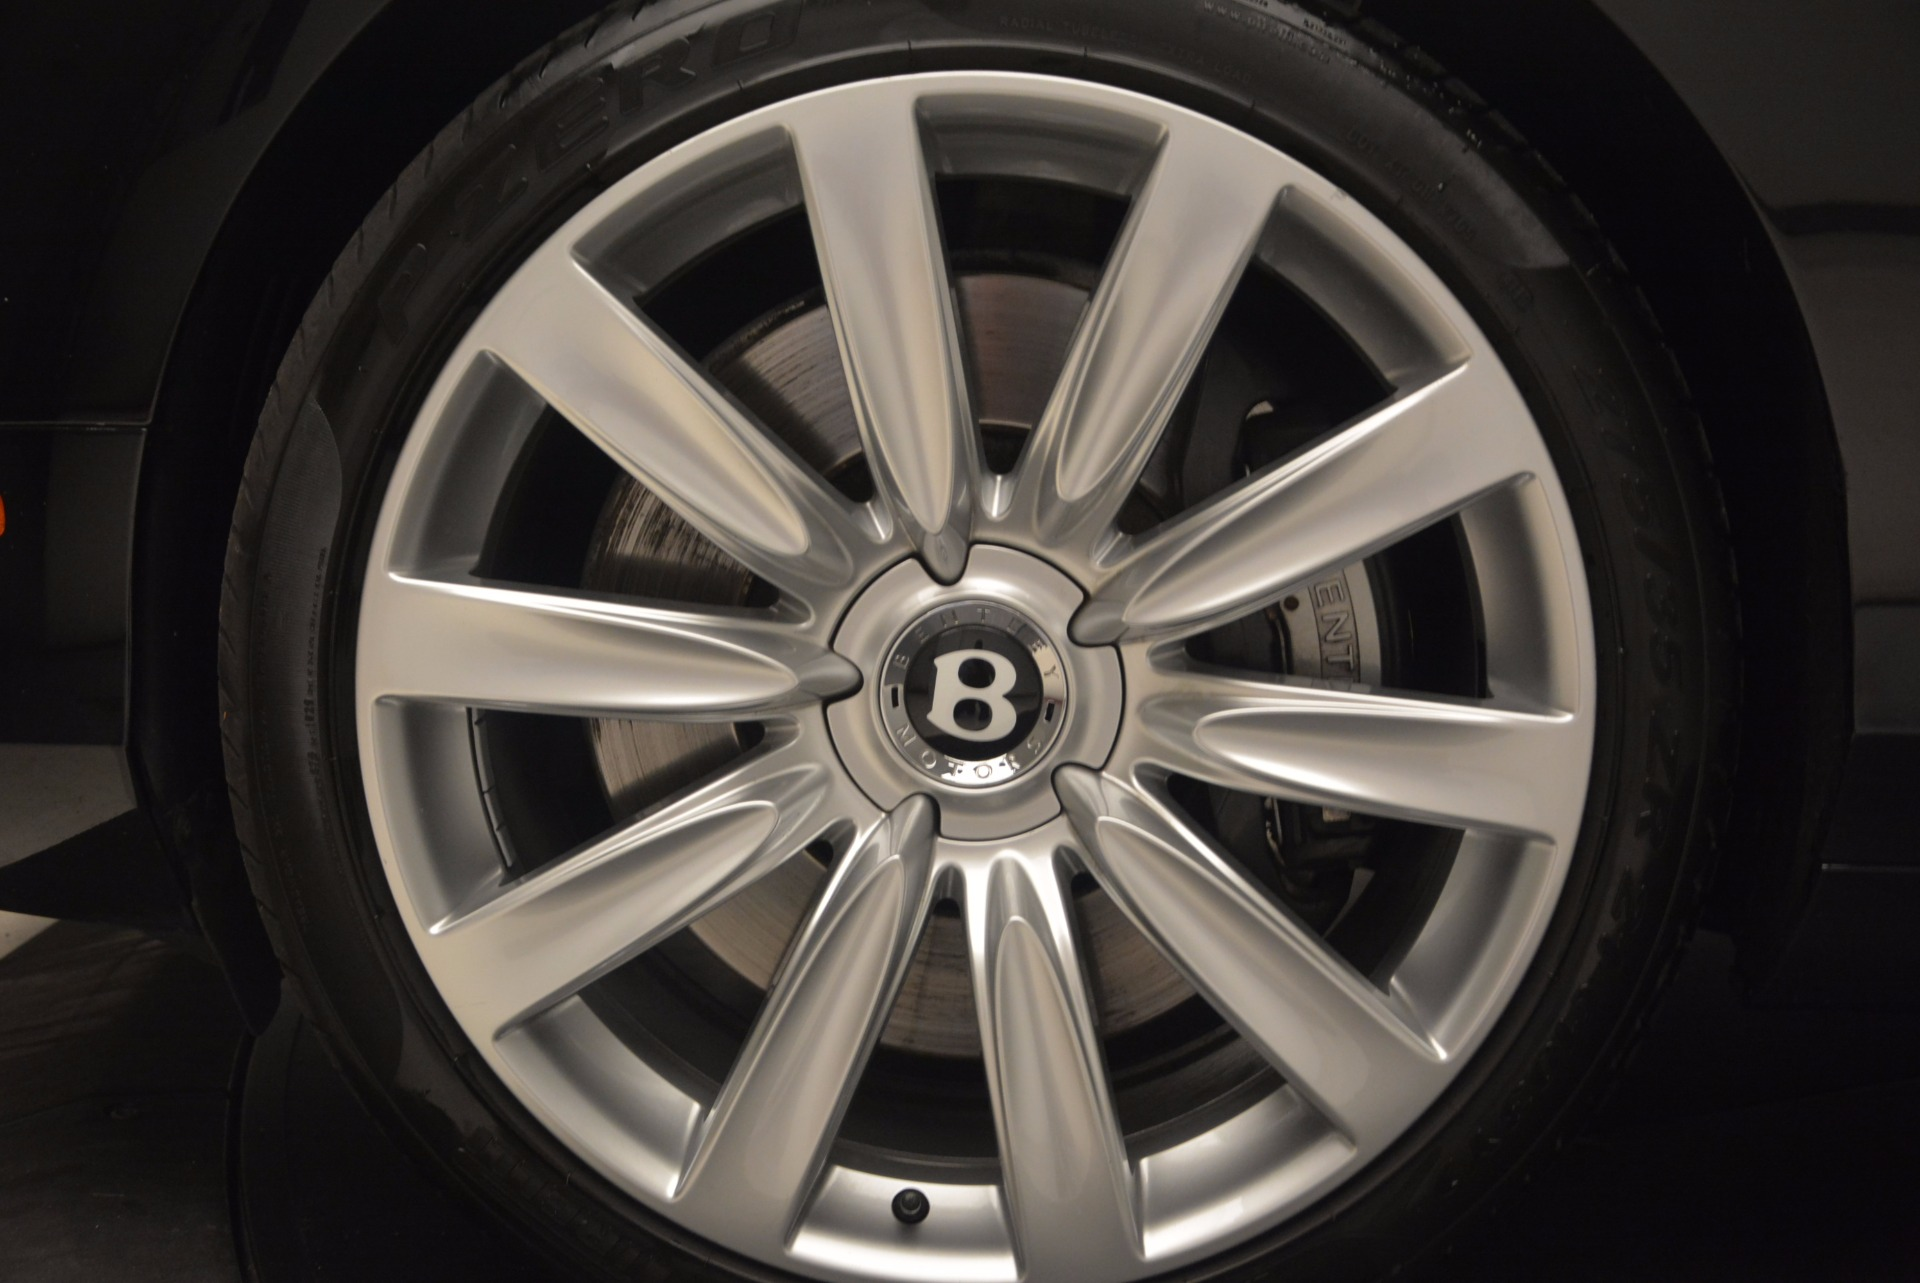 Used 2012 Bentley Continental GT W12 For Sale In Westport, CT 1656_p26